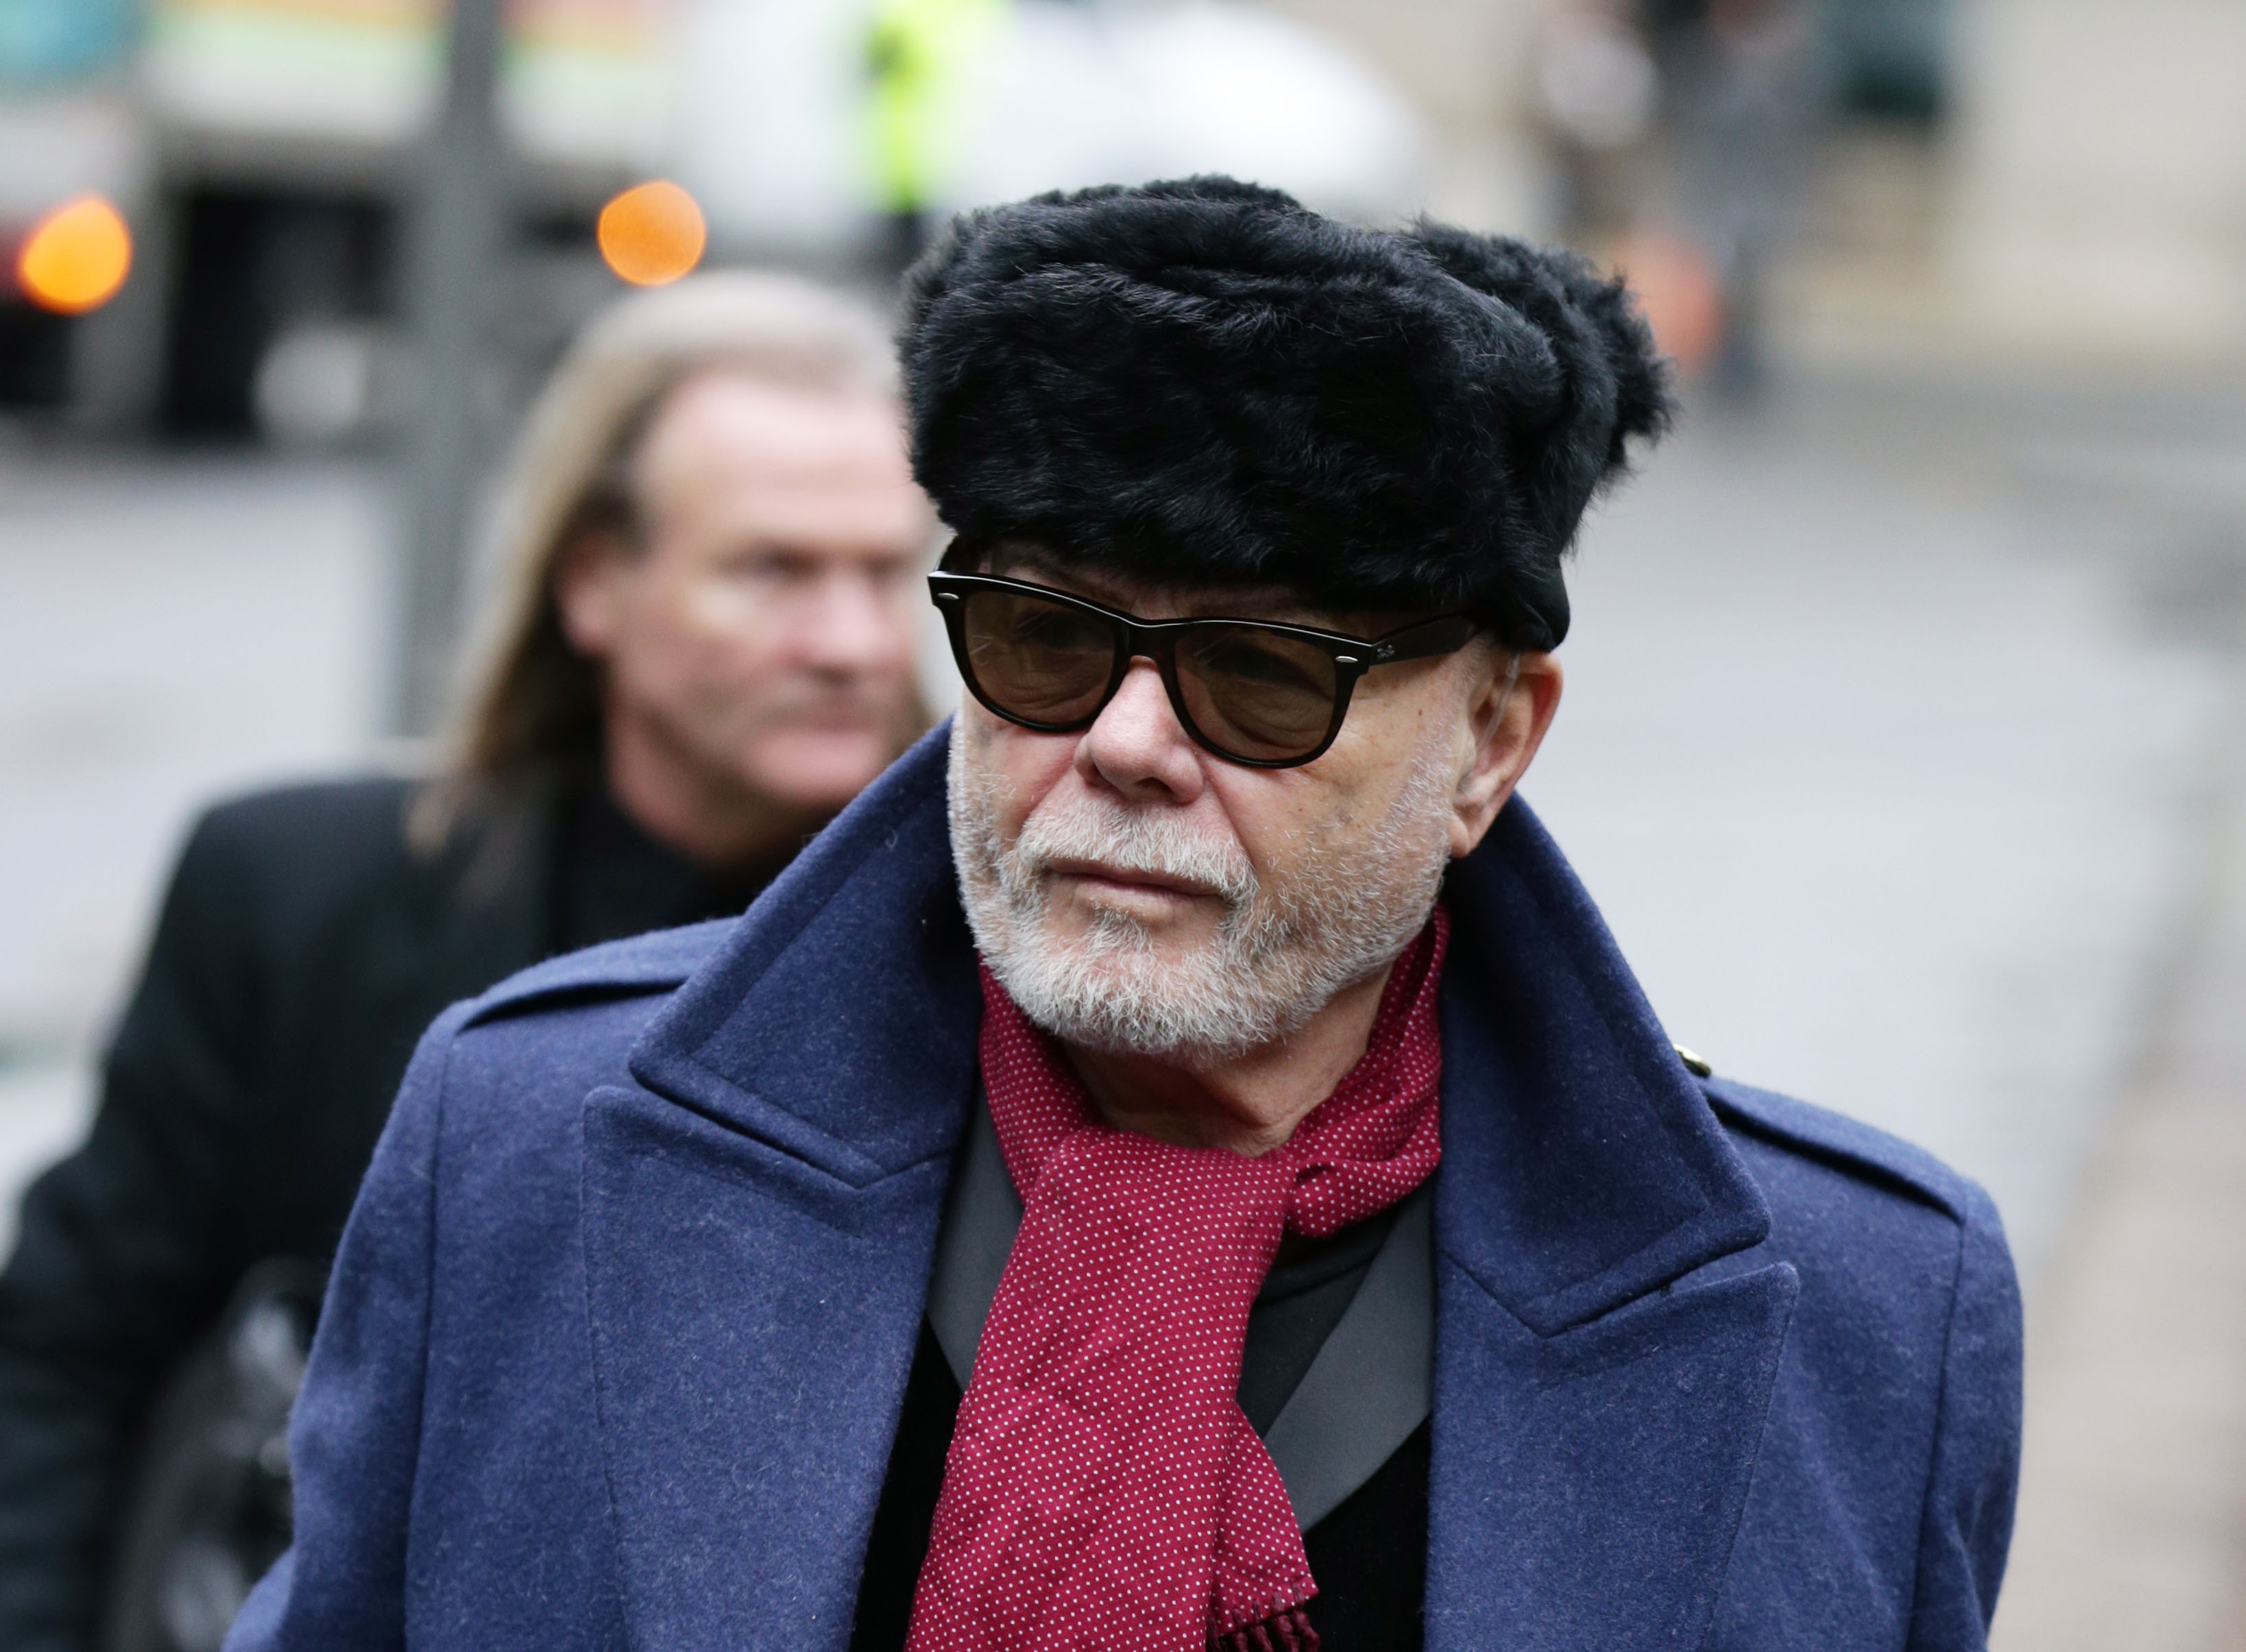 Why Gary Glitter won't get any royalties from The Joker